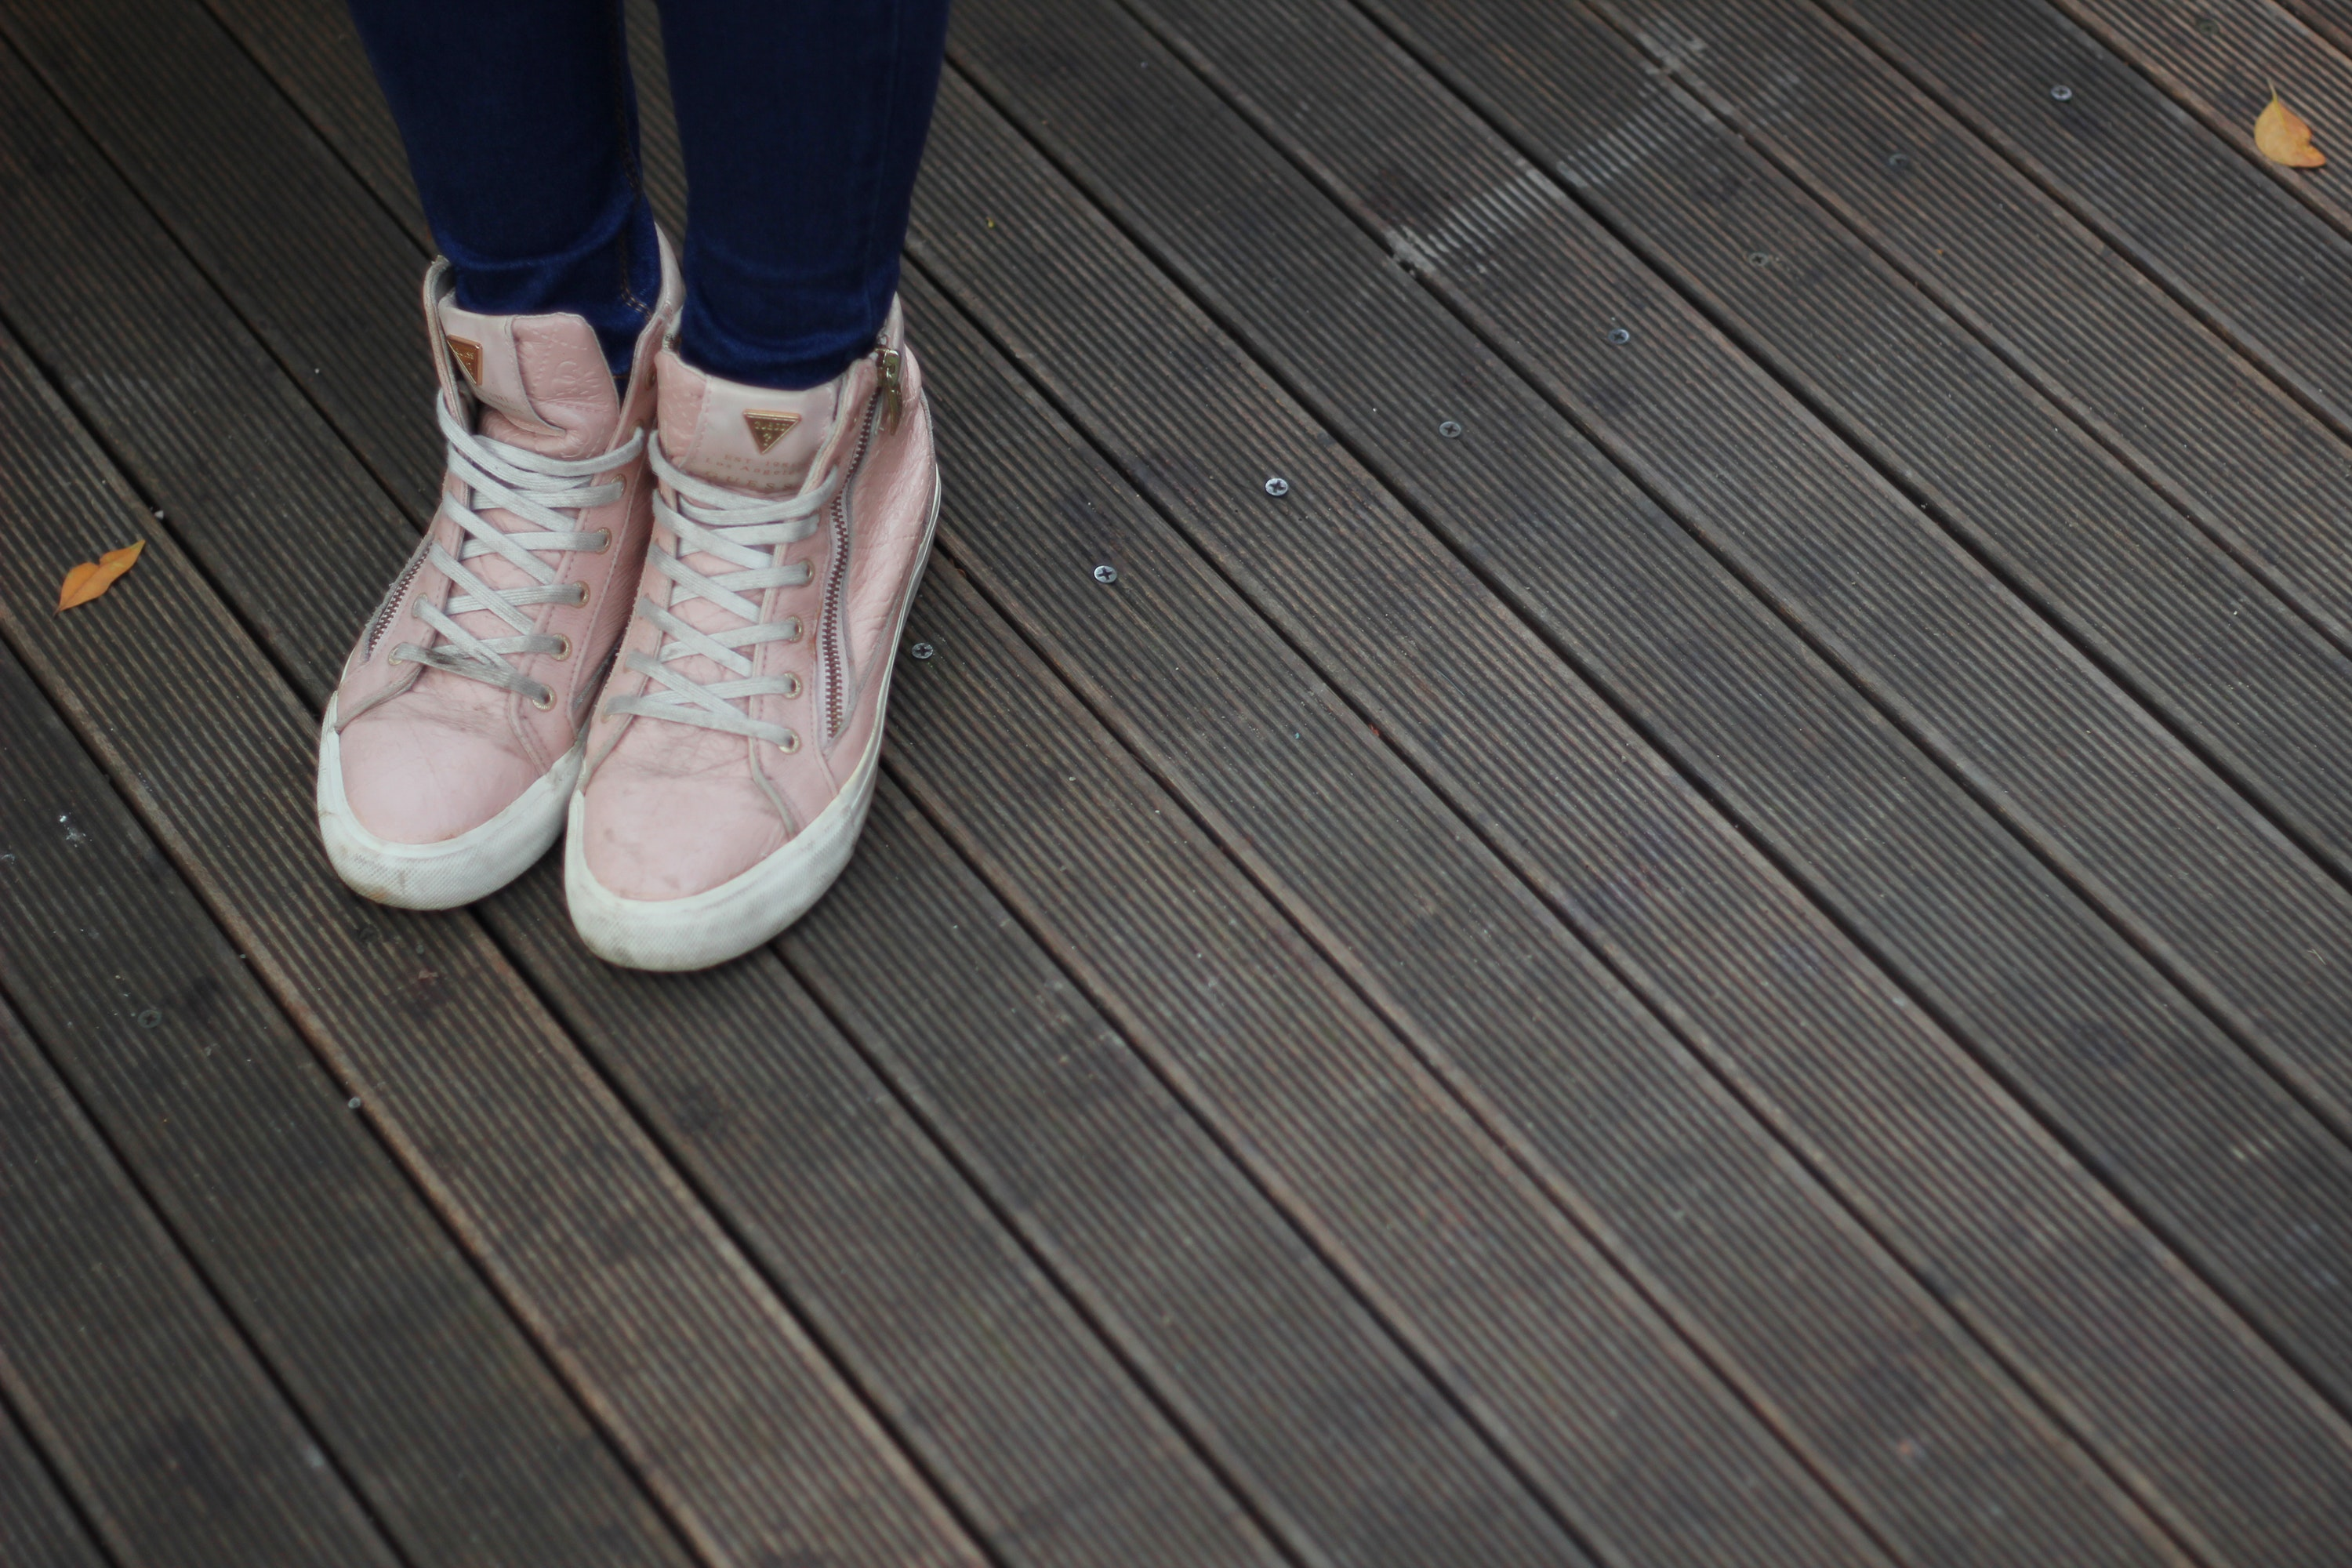 Person Wearing Pink and White High Top Sneakers, Denim, Denim jeans, Fashion, Foot, HQ Photo